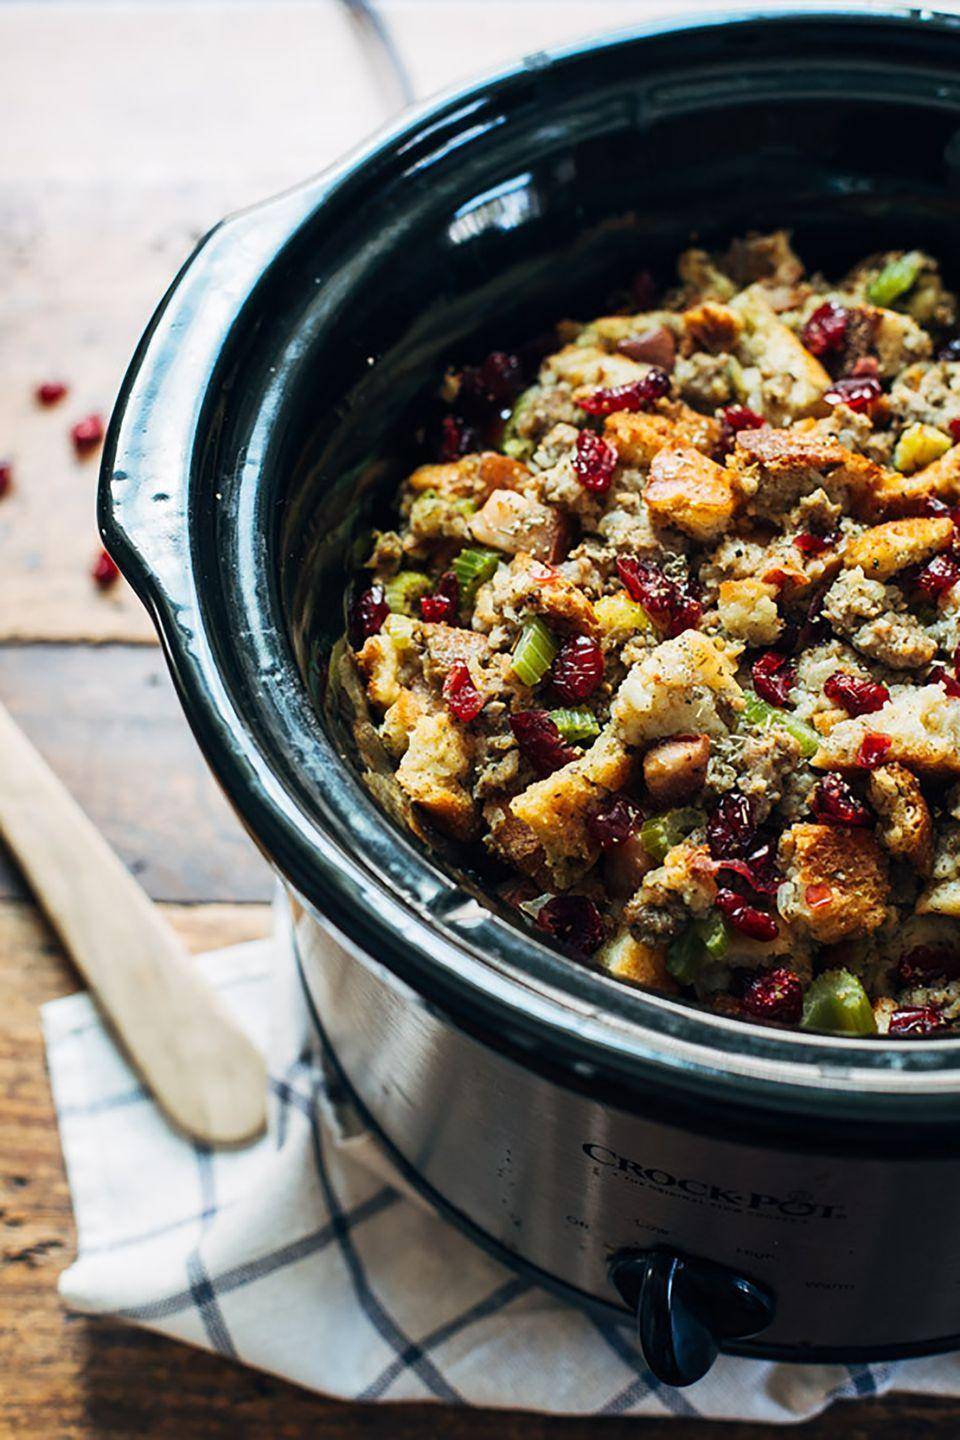 """<p>Just toss the ingredients in your slow cooker, set to simmer, and get ready to eat the best stuffing of your life.</p><p><strong>Get the recipe at <a href=""""http://pinchofyum.com/slow-cooker-pear-sausage-stuffing"""" rel=""""nofollow noopener"""" target=""""_blank"""" data-ylk=""""slk:Pinch of Yum"""" class=""""link rapid-noclick-resp"""">Pinch of Yum</a>.</strong> </p>"""